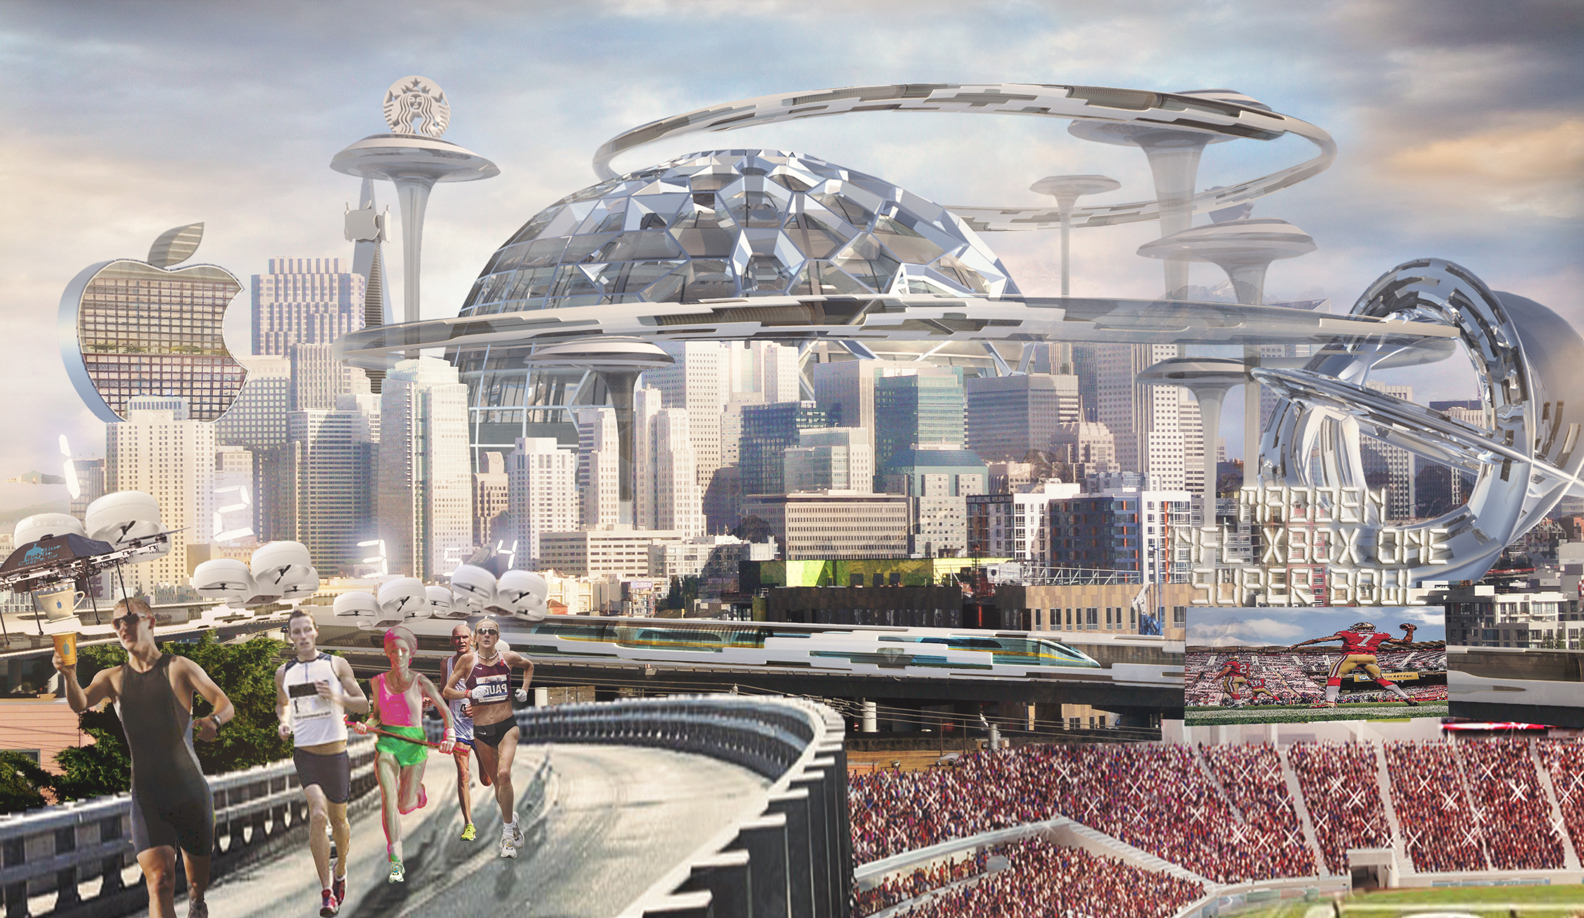 Amazon Dome, 49er Stadium, and more